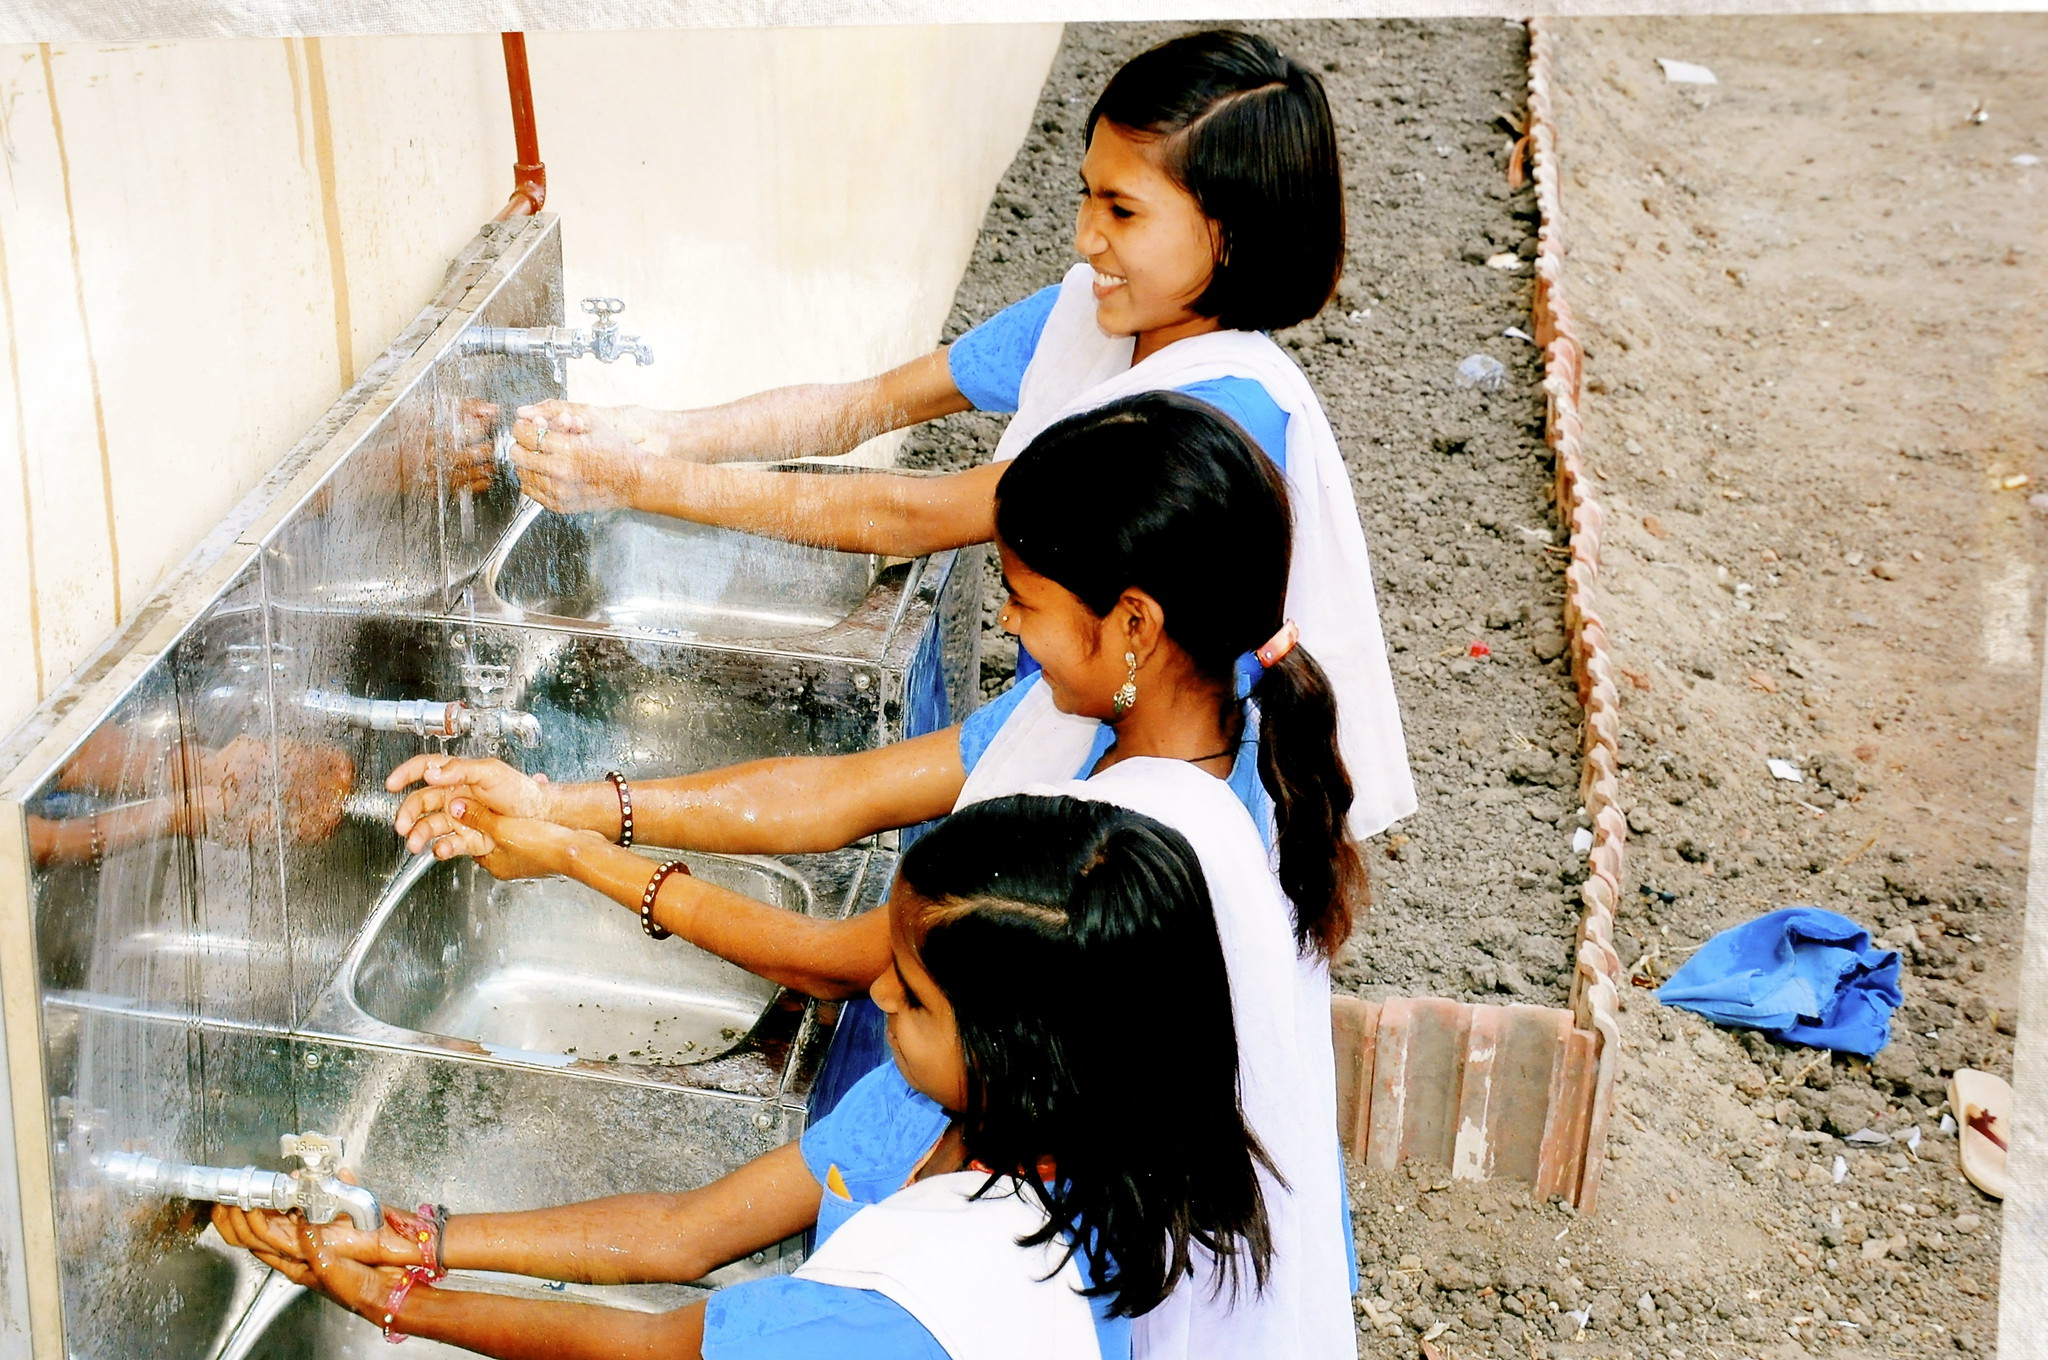 sanitation for all students